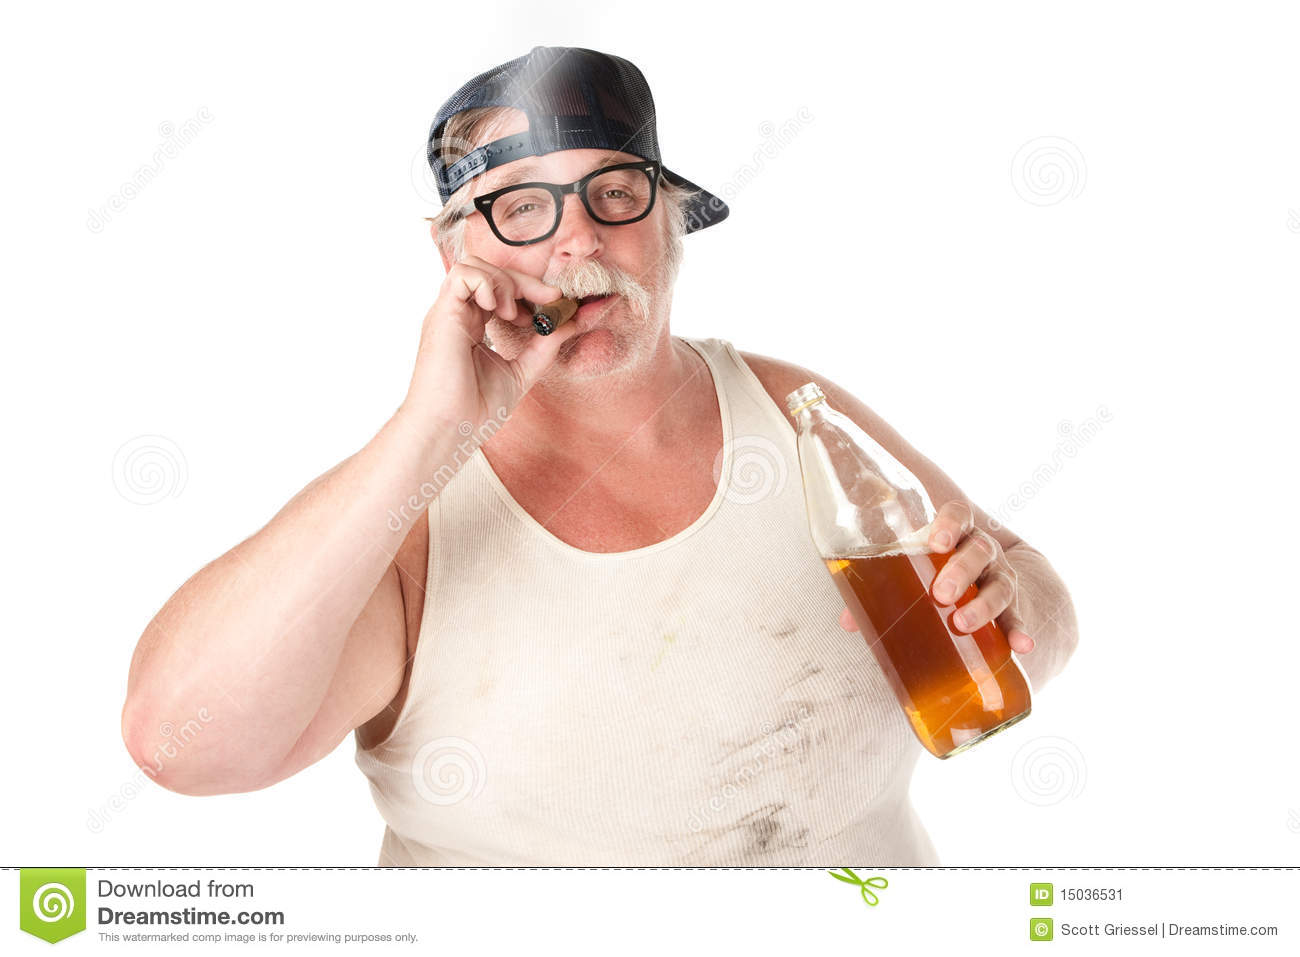 Guys Drinking Beer Images